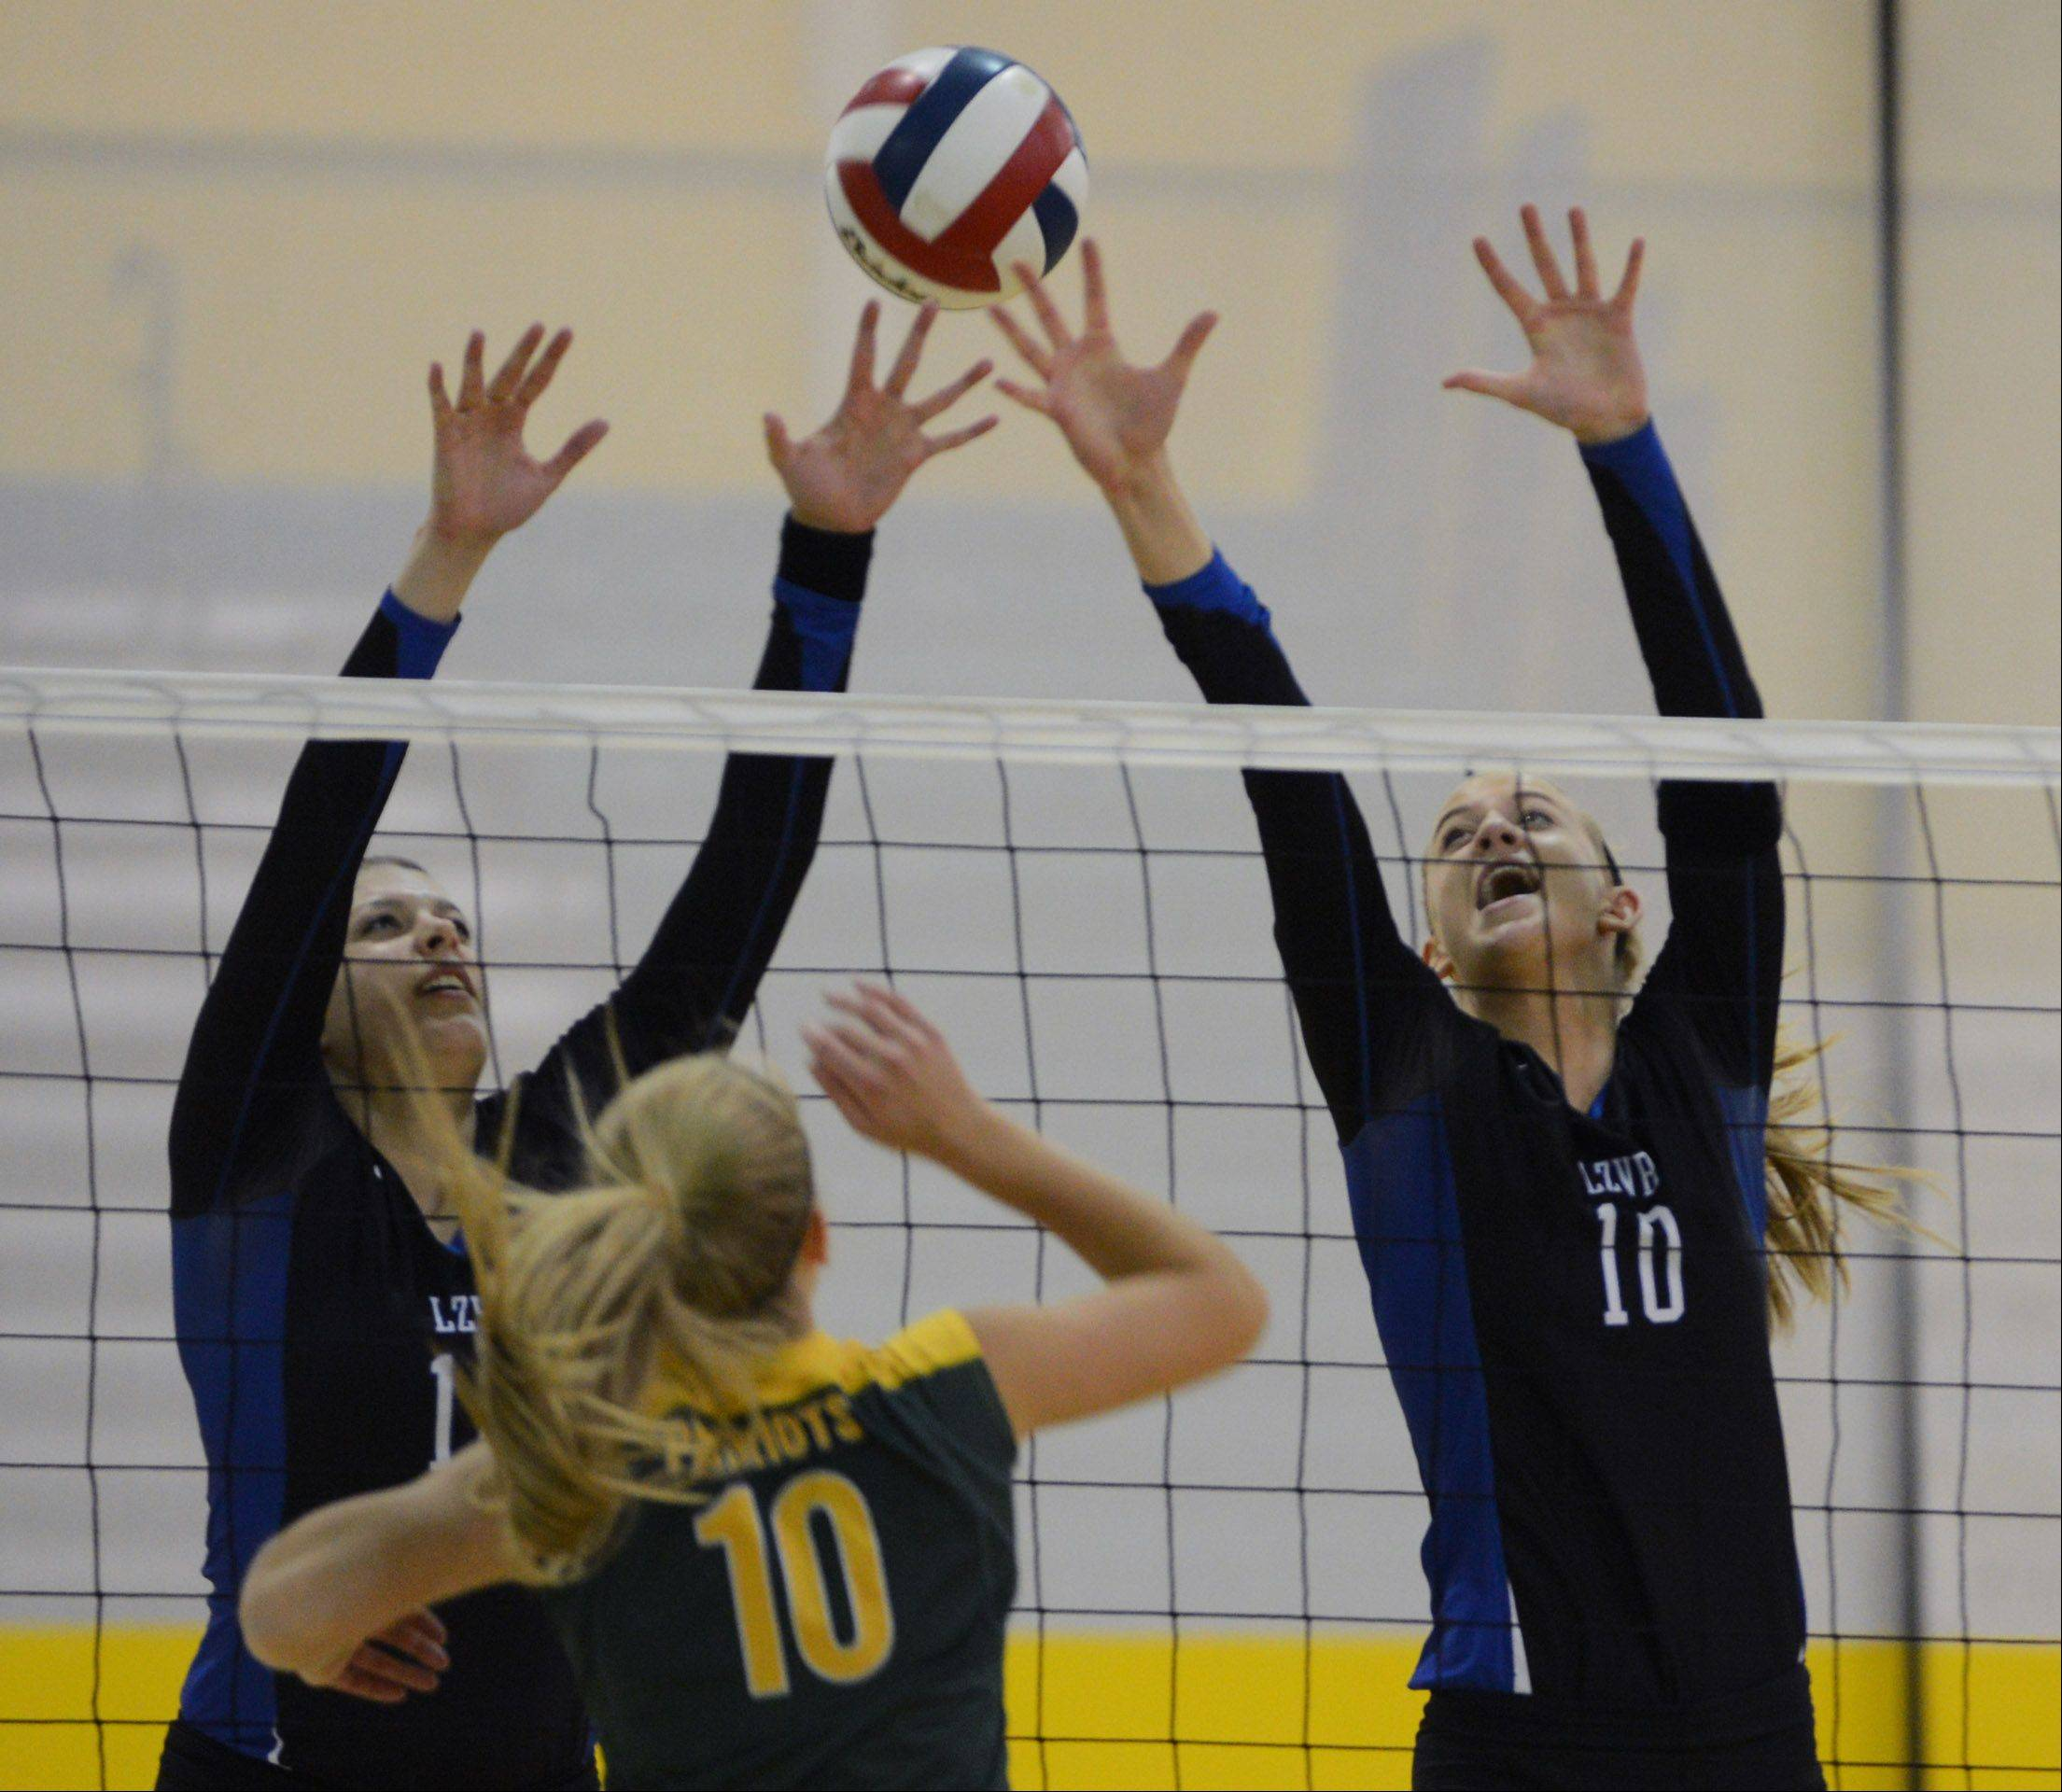 Lake Zurich's Sydney Glover, left, and Kristen Walding try to block a shot by Stevenson's Jennifer Kapov (10) during Wednesday's volleyball game in Lincolnshire.